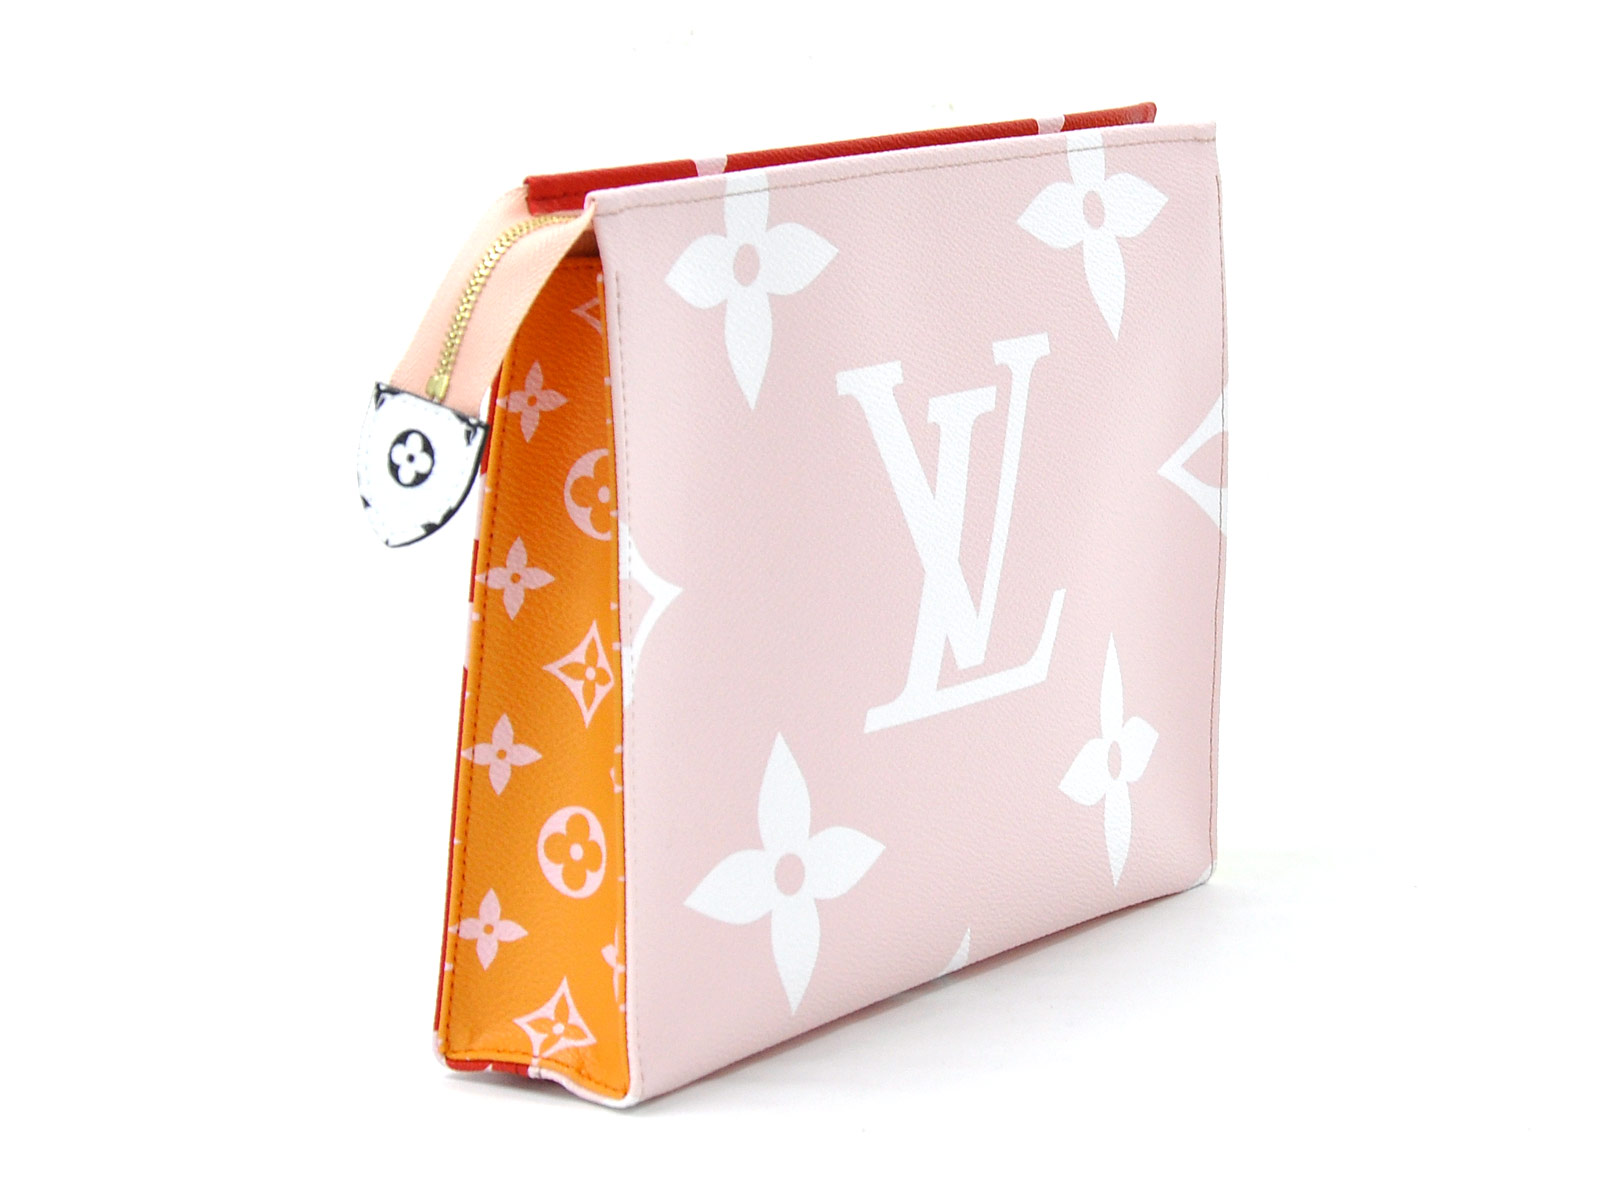 Auth-Louis-Vuitton-Monogram-Giant-Pochette-Toilette-Clutch-Bag-Rouge-Pink-96998 thumbnail 5